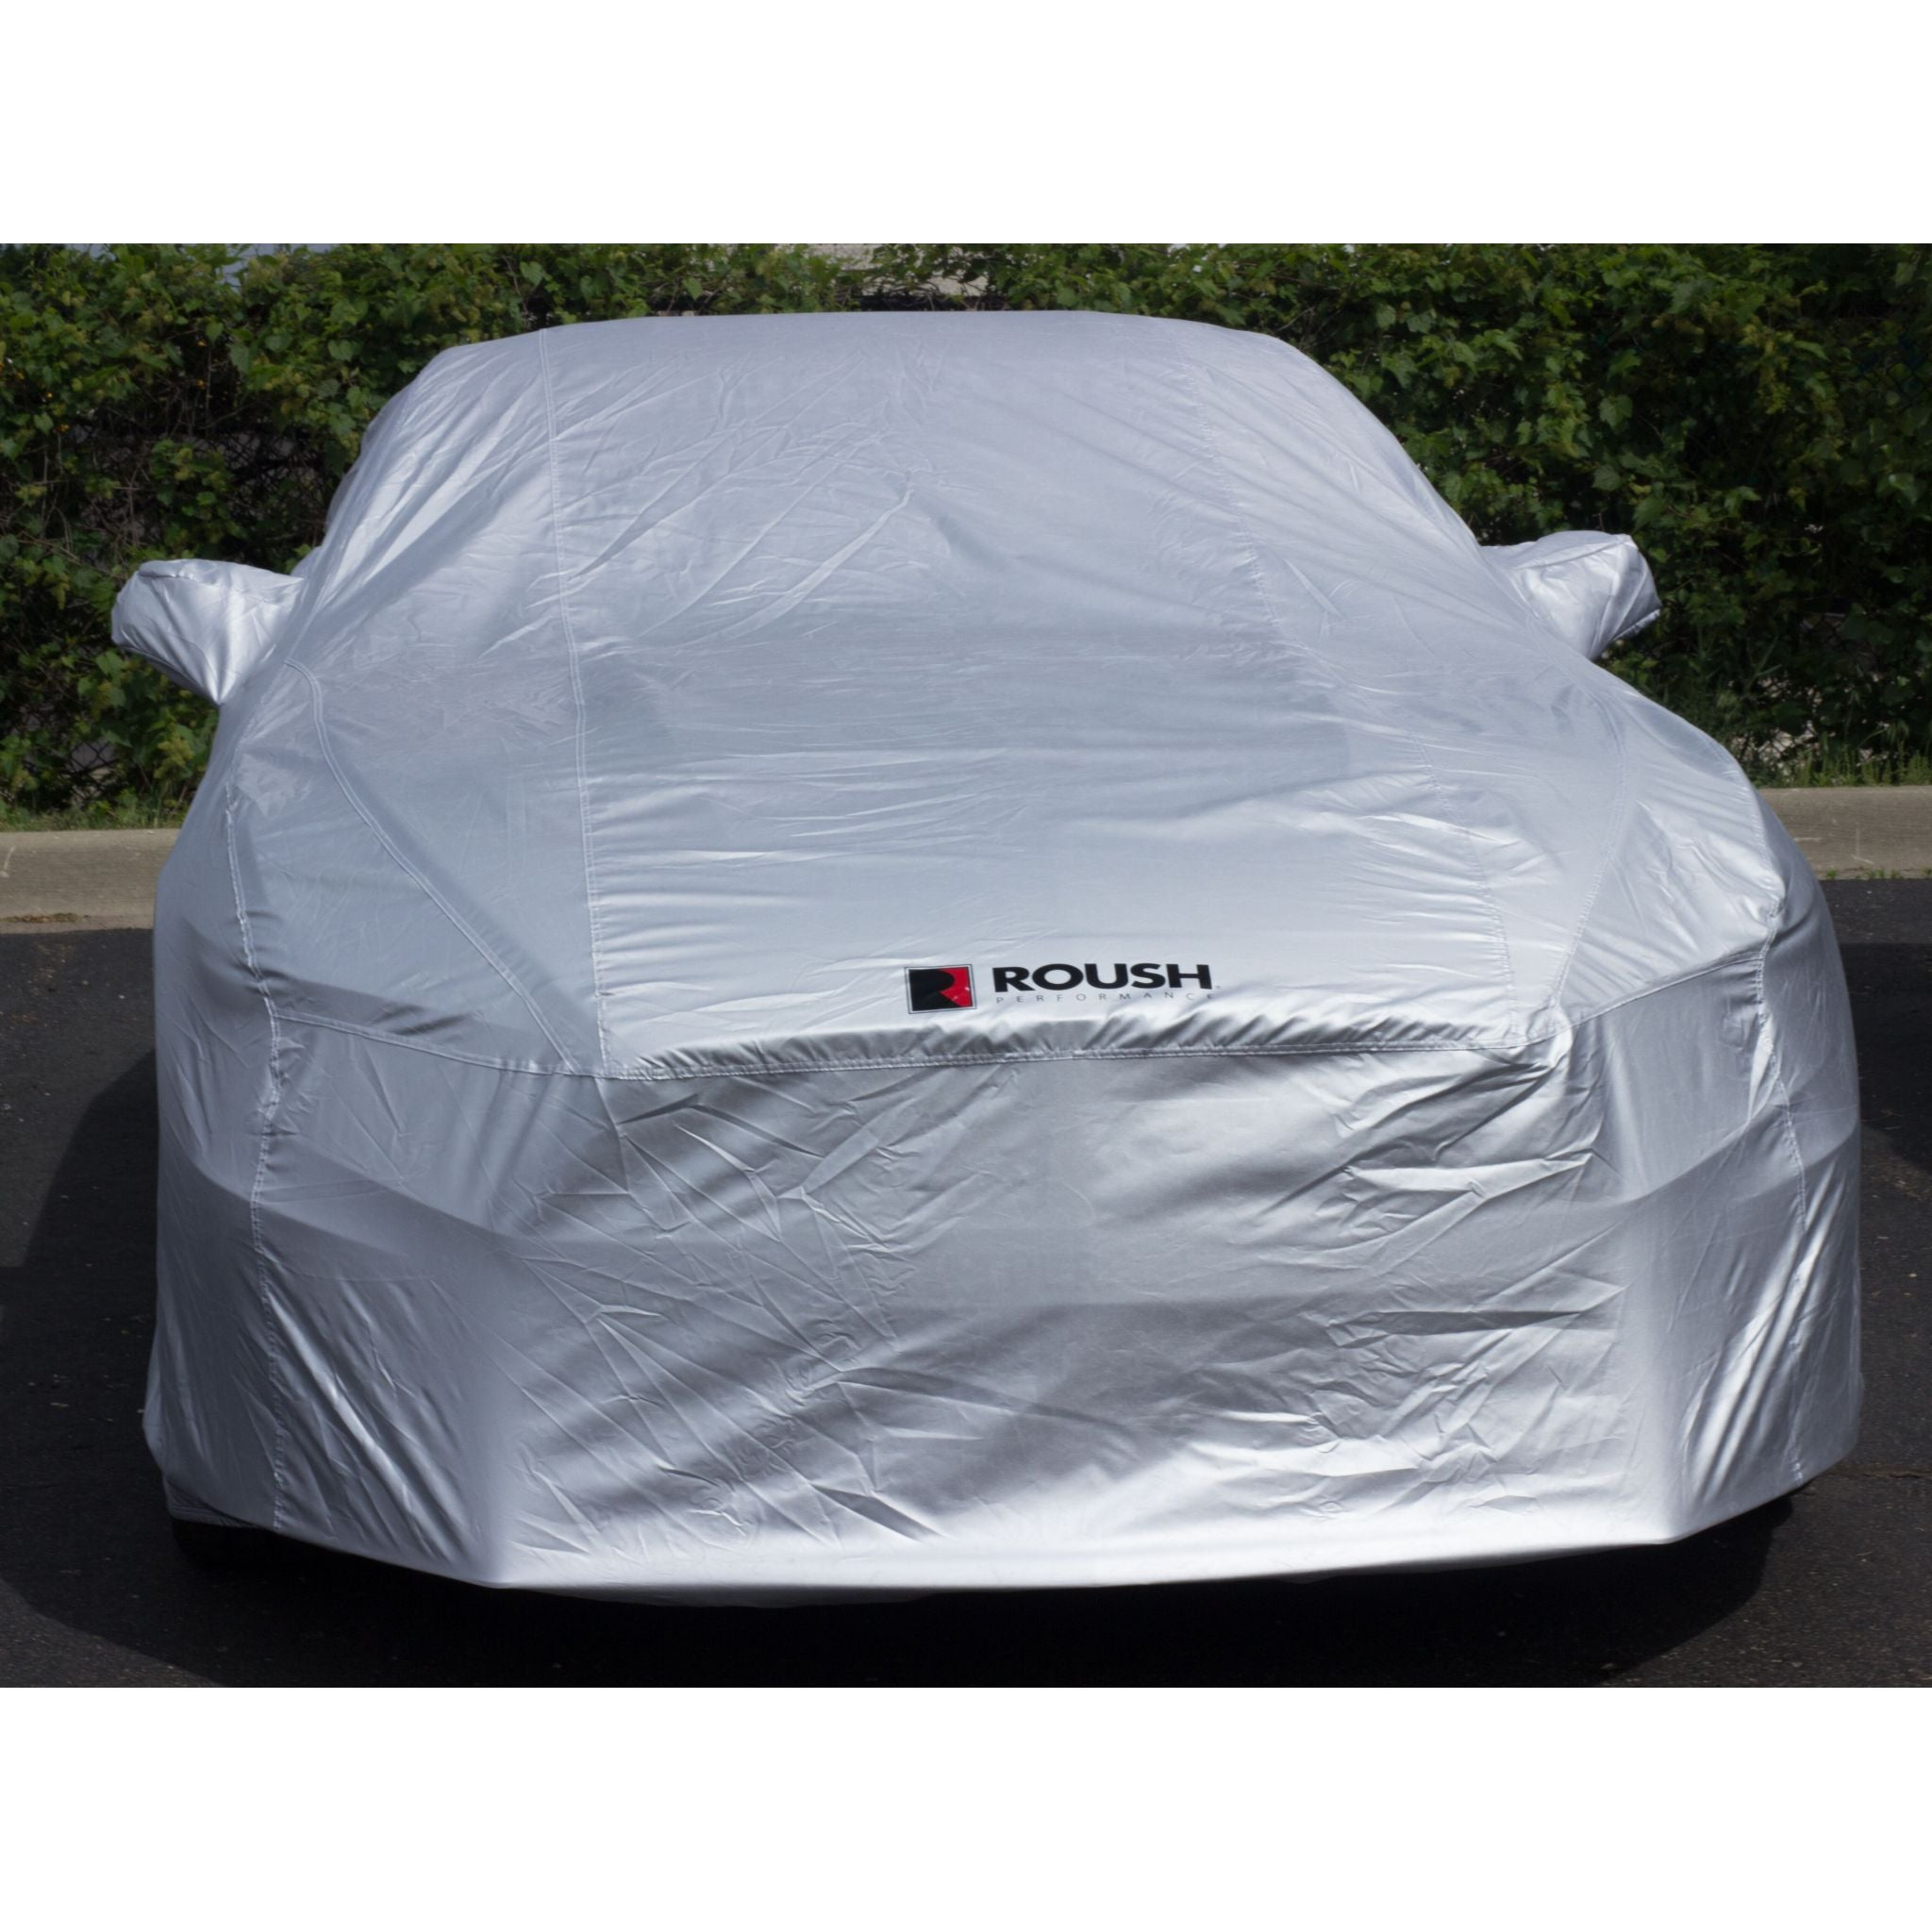 2015-2018 Mustang ROUSH Stormproof Car Cover